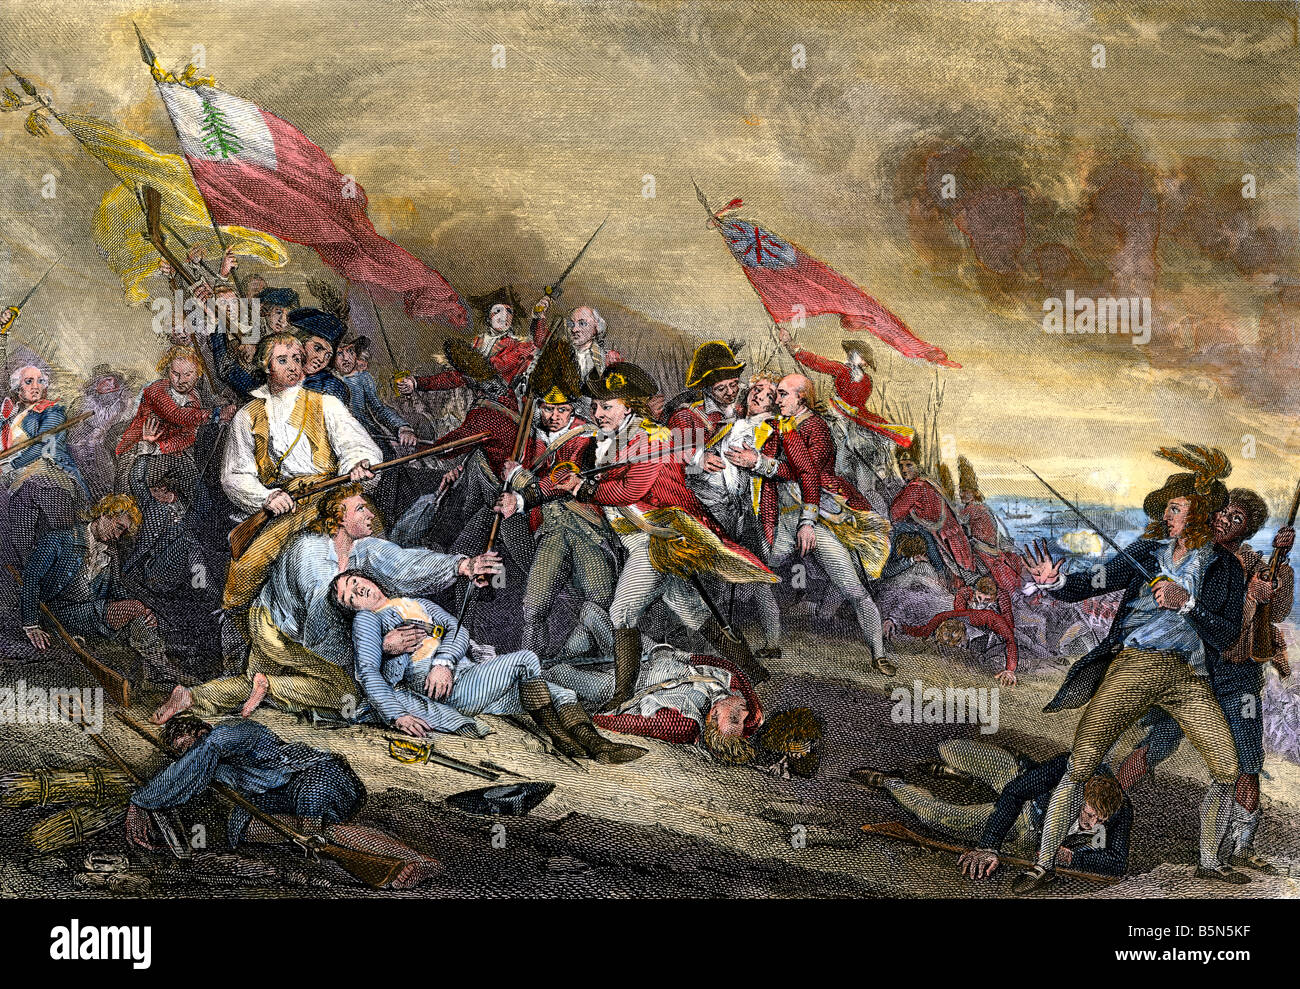 an account of events during the battle of bunker hill in 1775 The battle of bunker hill was an important battle even though it was fought over a  what were some types of colonial protest against the british between 1763-1775.